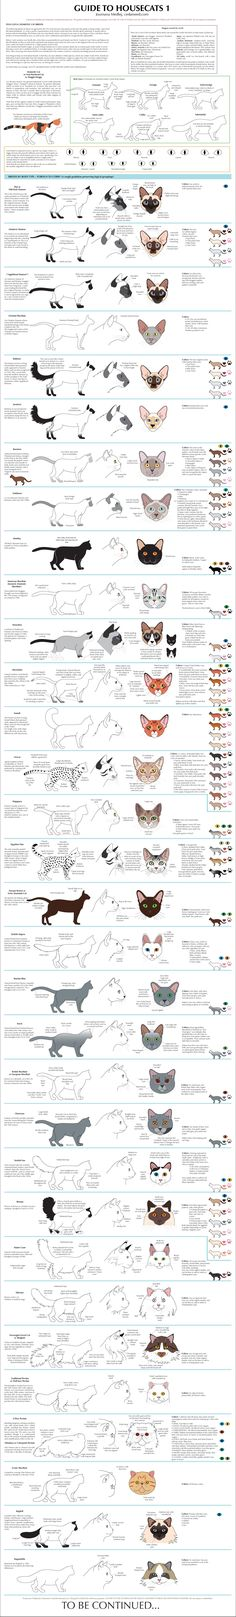 Cat breeds. Interesting, and I will still save feral cats first. I love Persian cats but I won't buy one as they have been completely disfigured and no longer look like a Persian cat; by greedy bored people looking to make a name for themselves with ridiculous standards. The Neblung ( spelling?), Main coon. Many variations of them are running around in nature and I love them all #CatBreeds